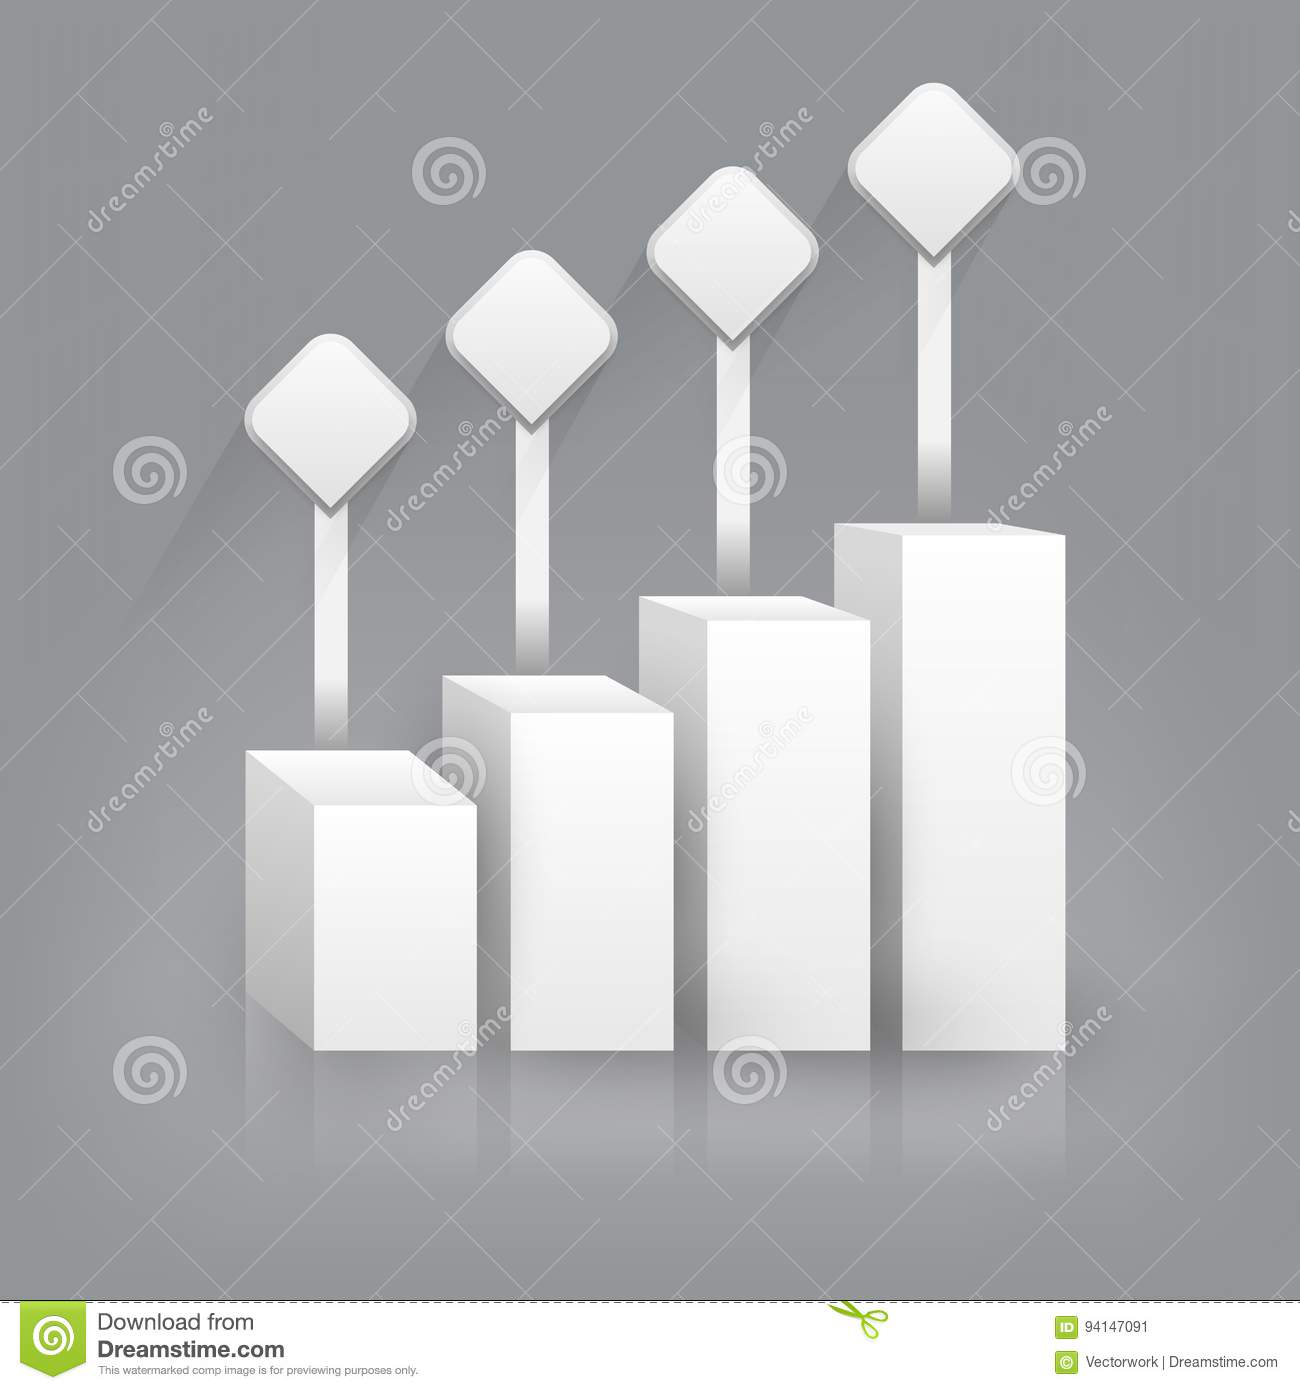 Business Bar Graph Blank Template Infographic Stock Vector - bar graph blank template